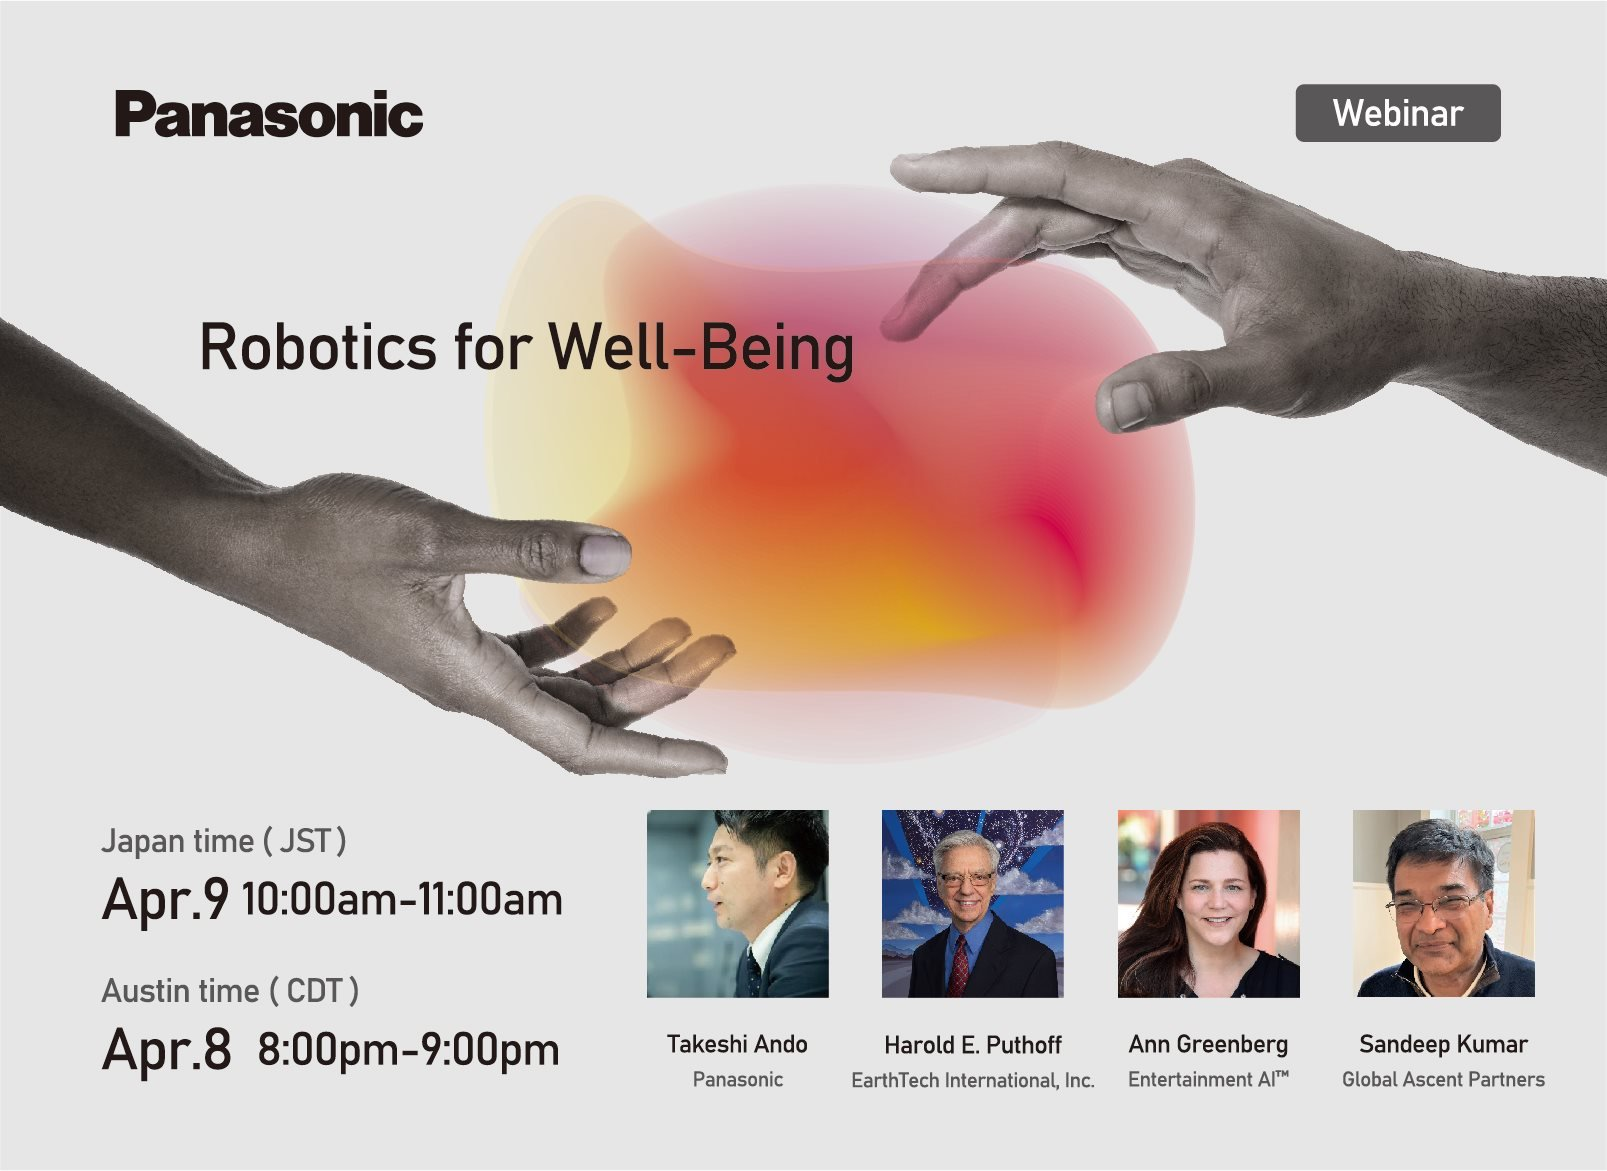 Robotics for Well-Being